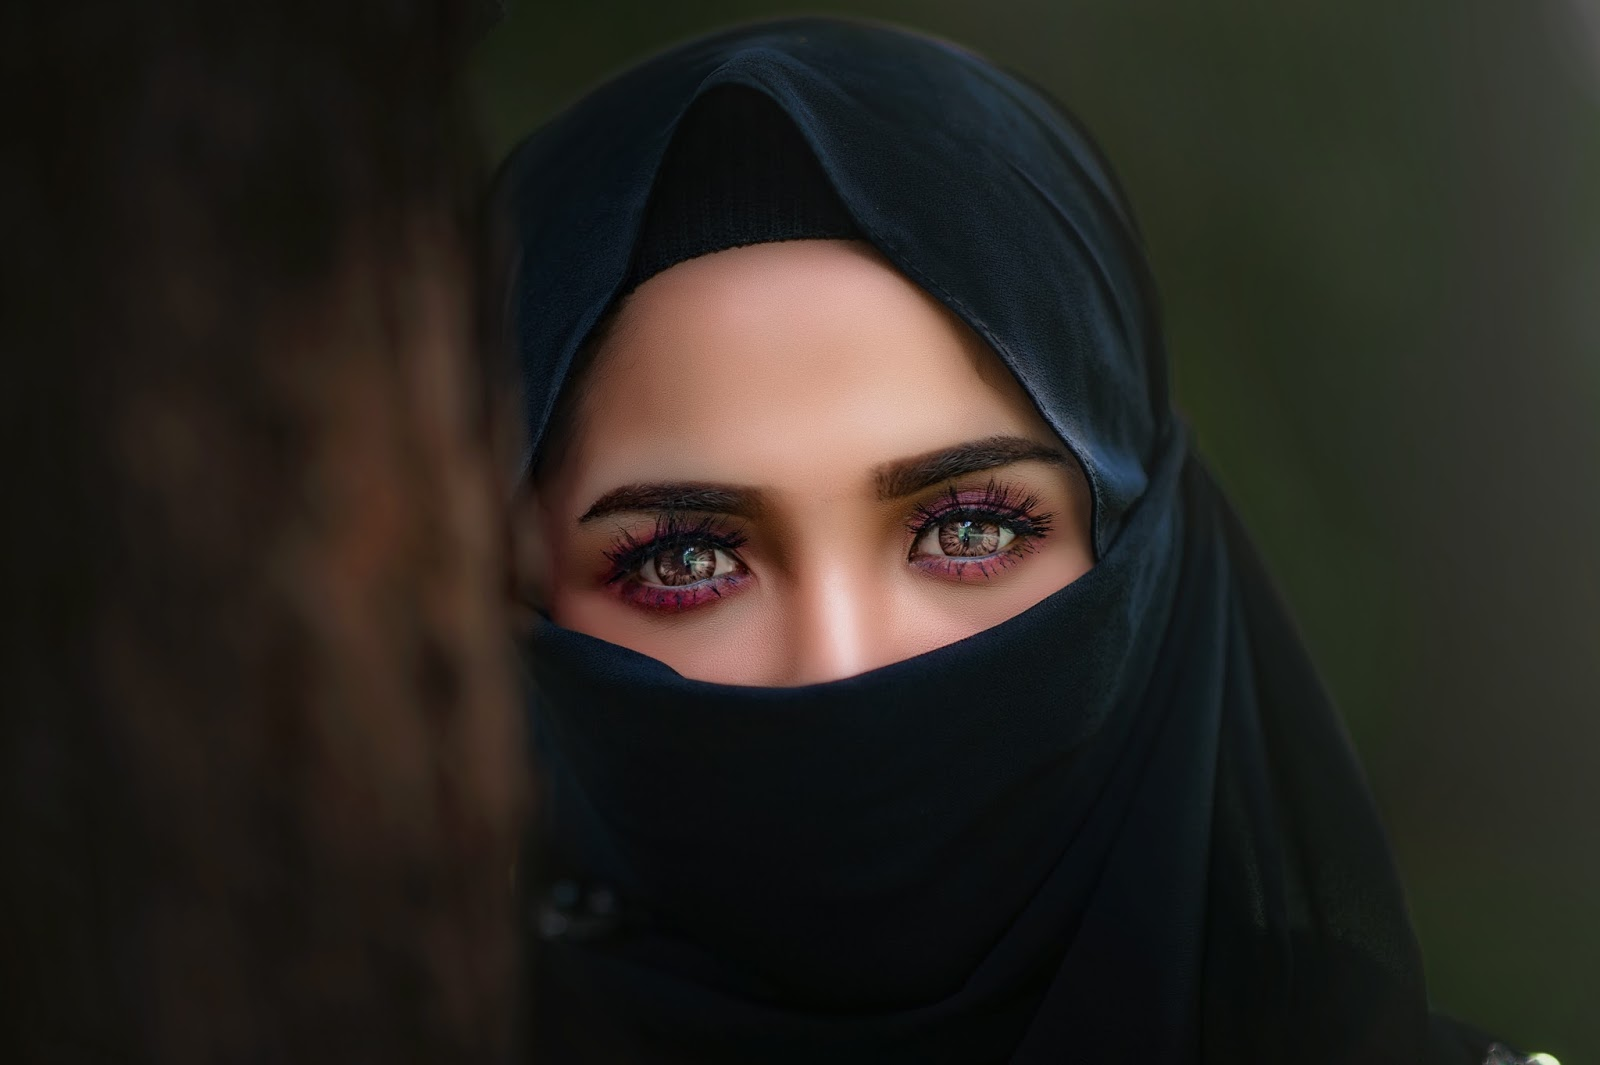 Sad Memories of Bad Looks - Respect Women and Protect Women - women protection